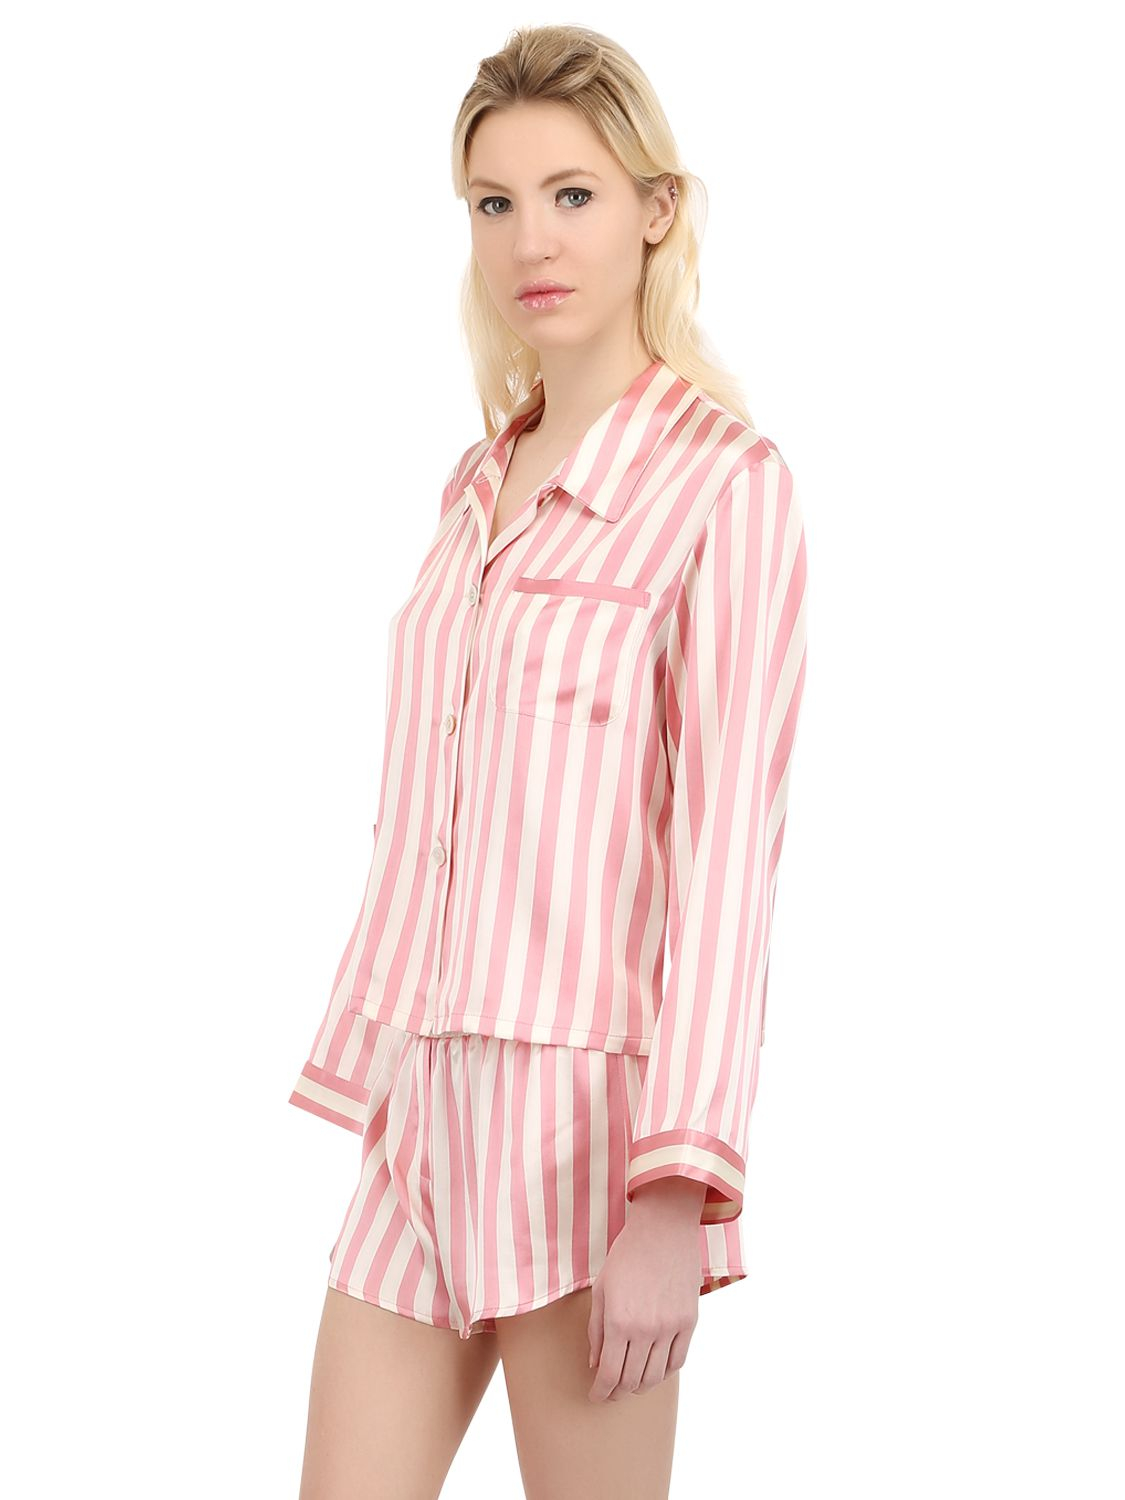 A comfortable set of pajamas makes downtime even sweeter, and when the pajamas look as good as they feel, that's the best of all. J. Crew's Dreamy Cotton Pajamas hit the mark on both counts, and.